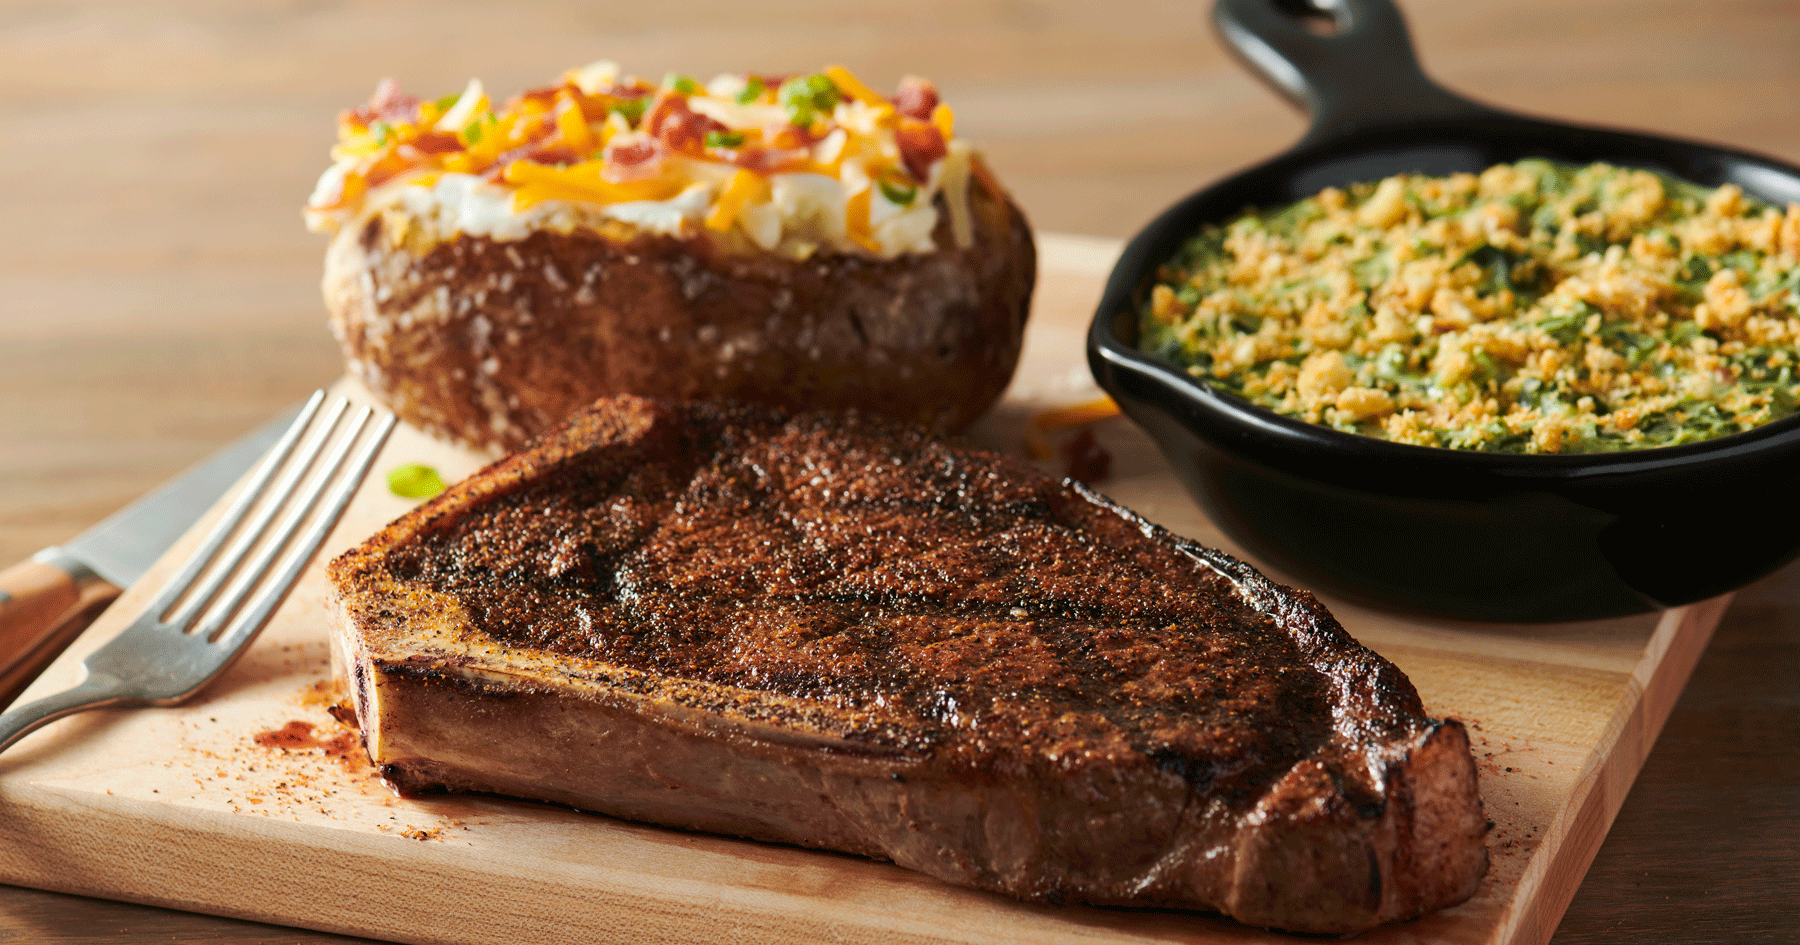 Outback Steakhouse Lowers Menu Prices And Adds Flexibility To Boost Value